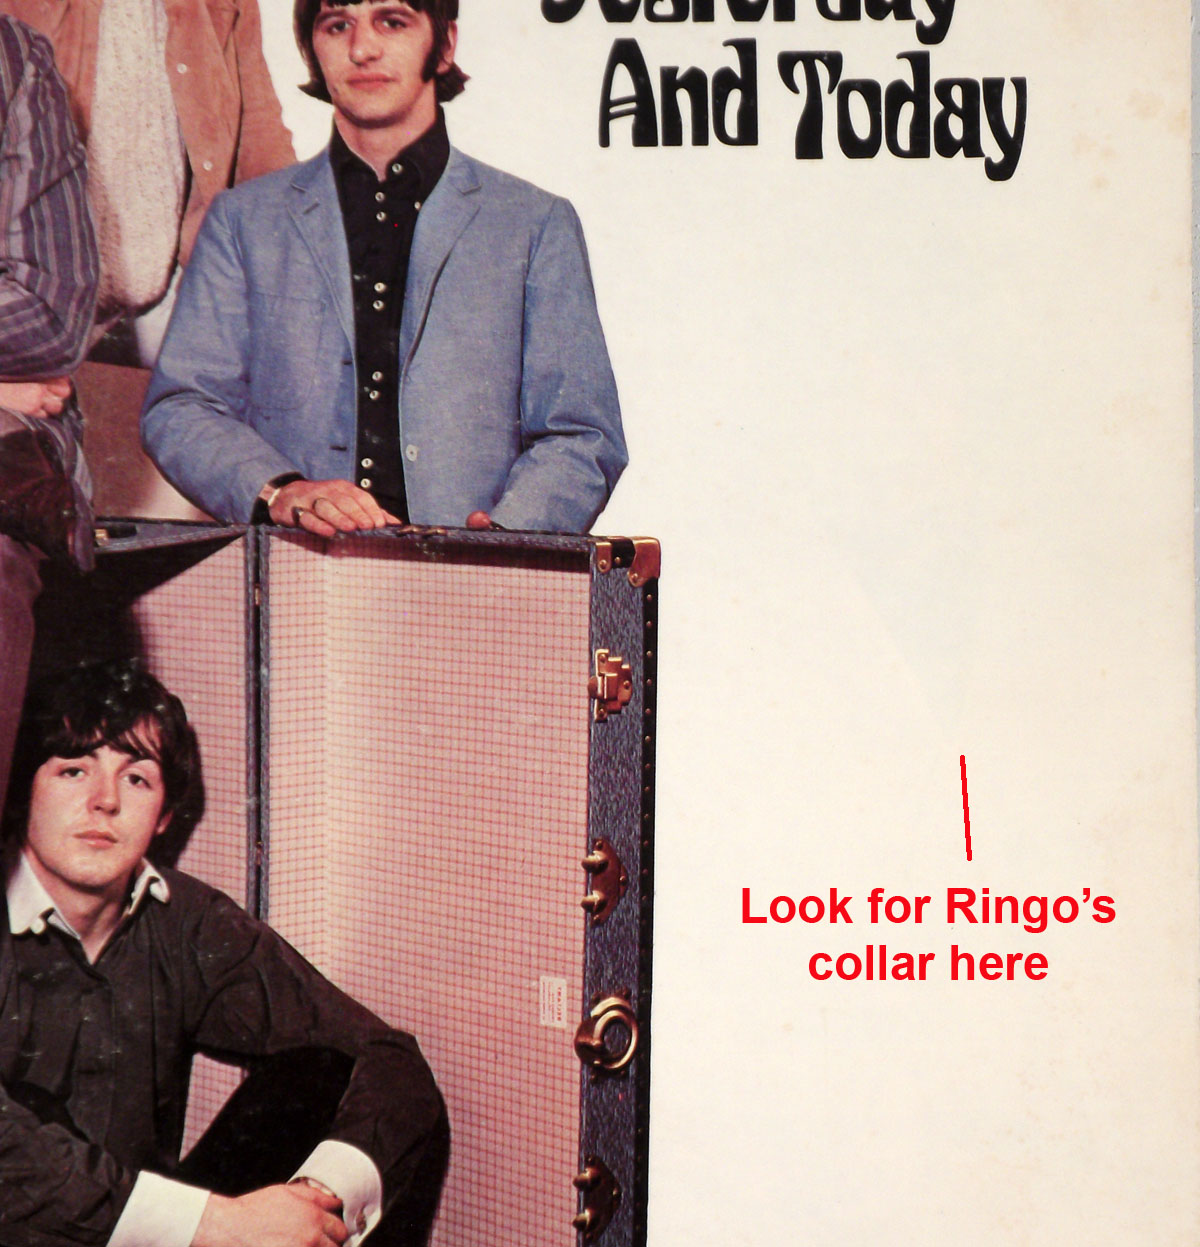 Butcher Cover Letter: The Beatles Yesterday And Today